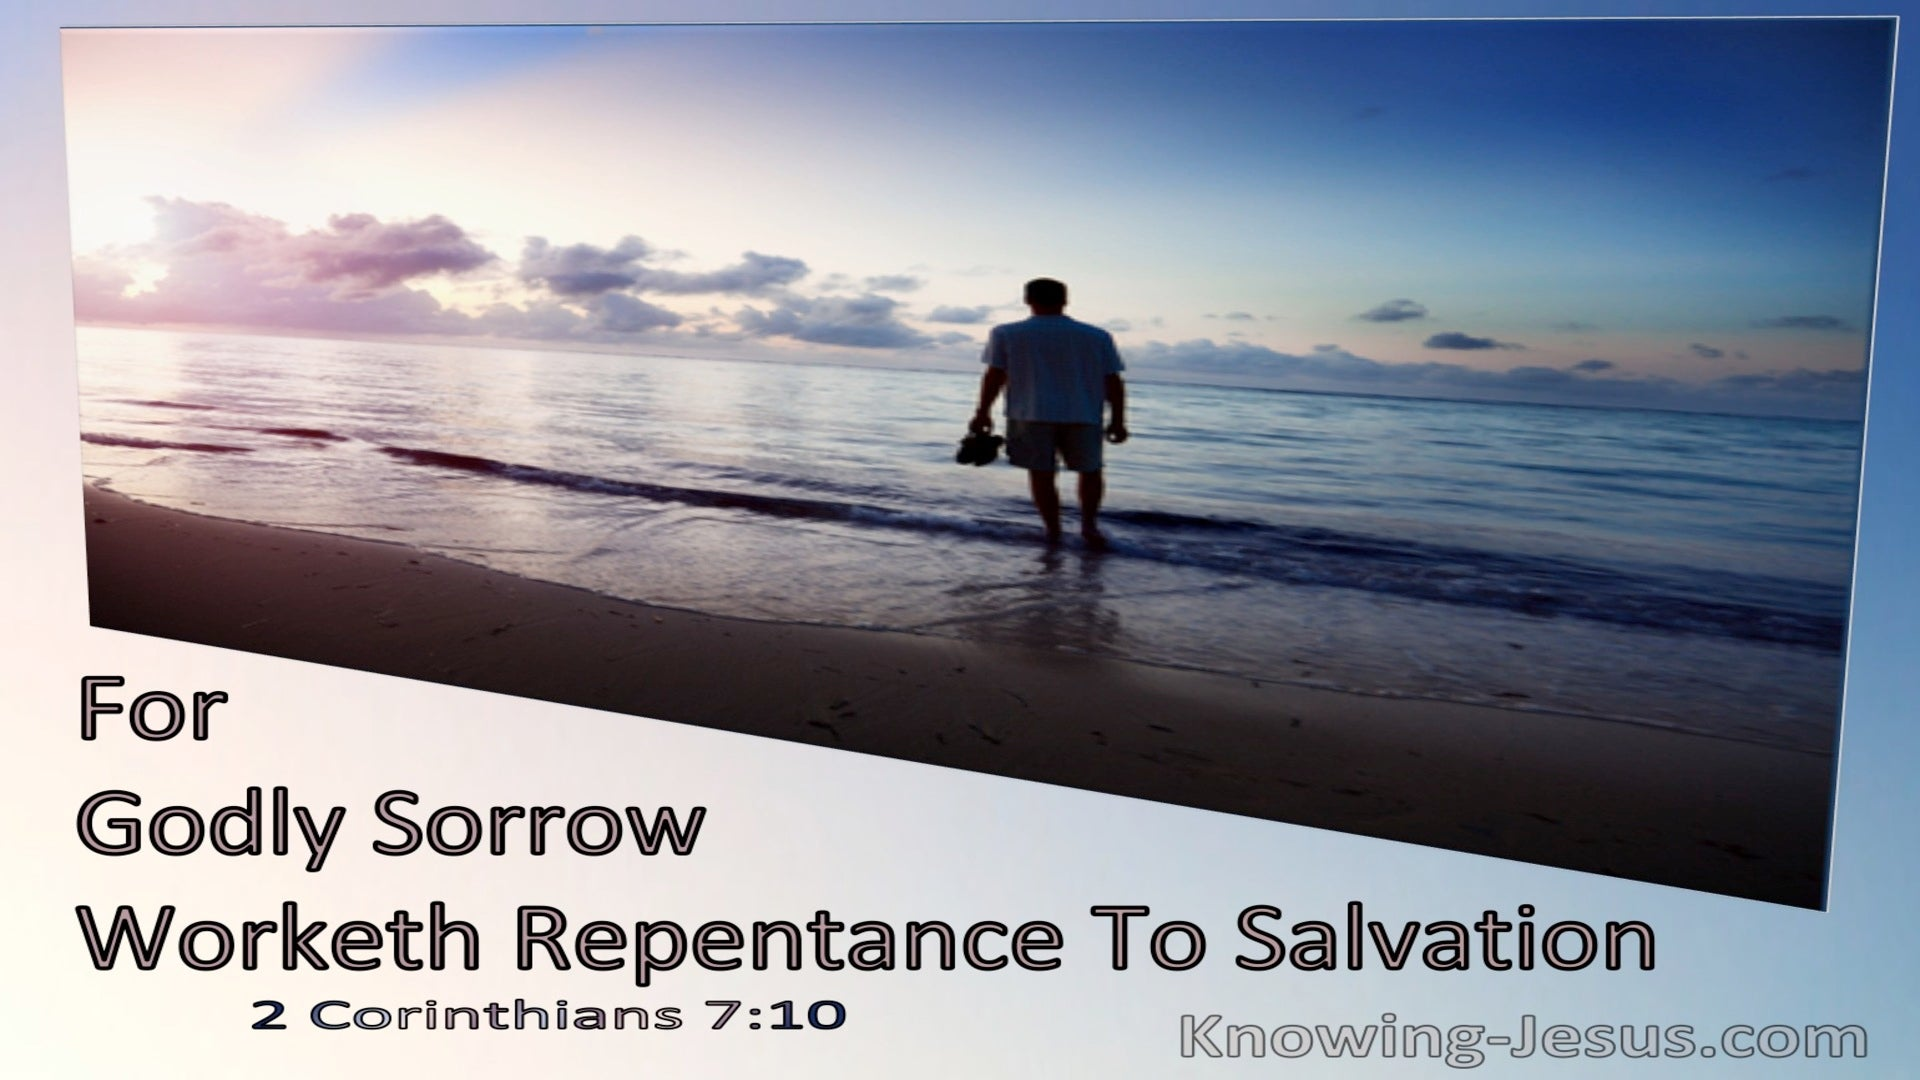 2 Corinthians 7:10 For Godly Sorrow Worketh Repentance To Salvation (utmost)12:07